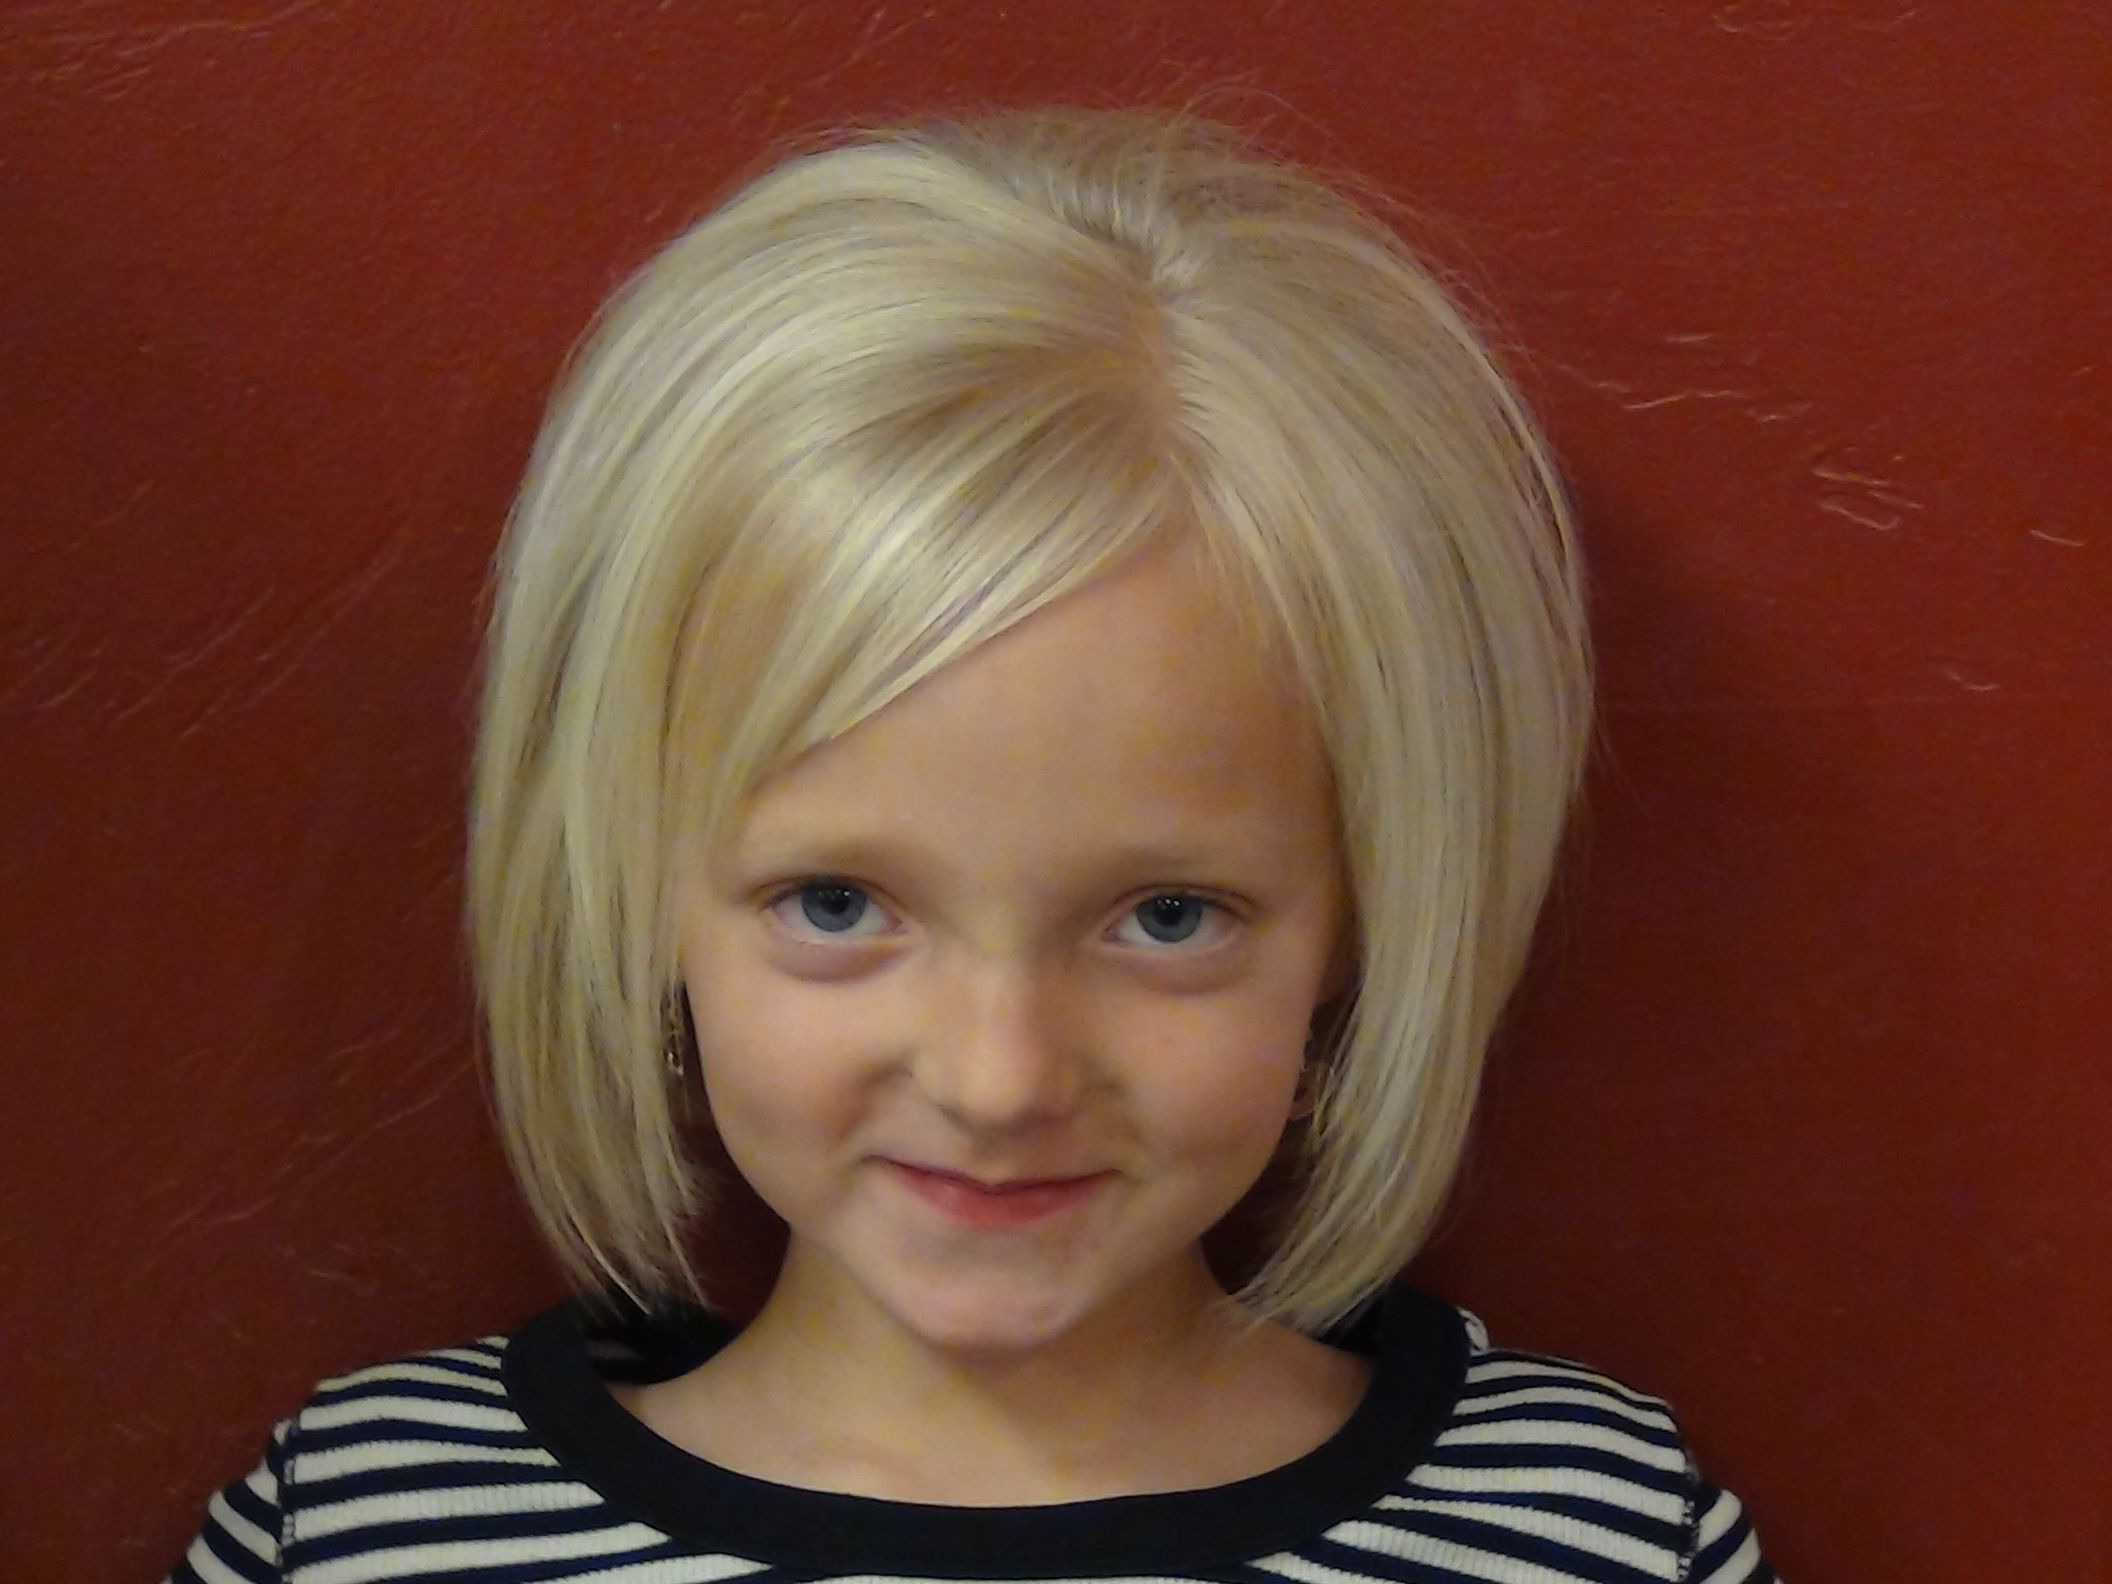 96 best kids hair images on pinterest | hairstyles, hairstyle